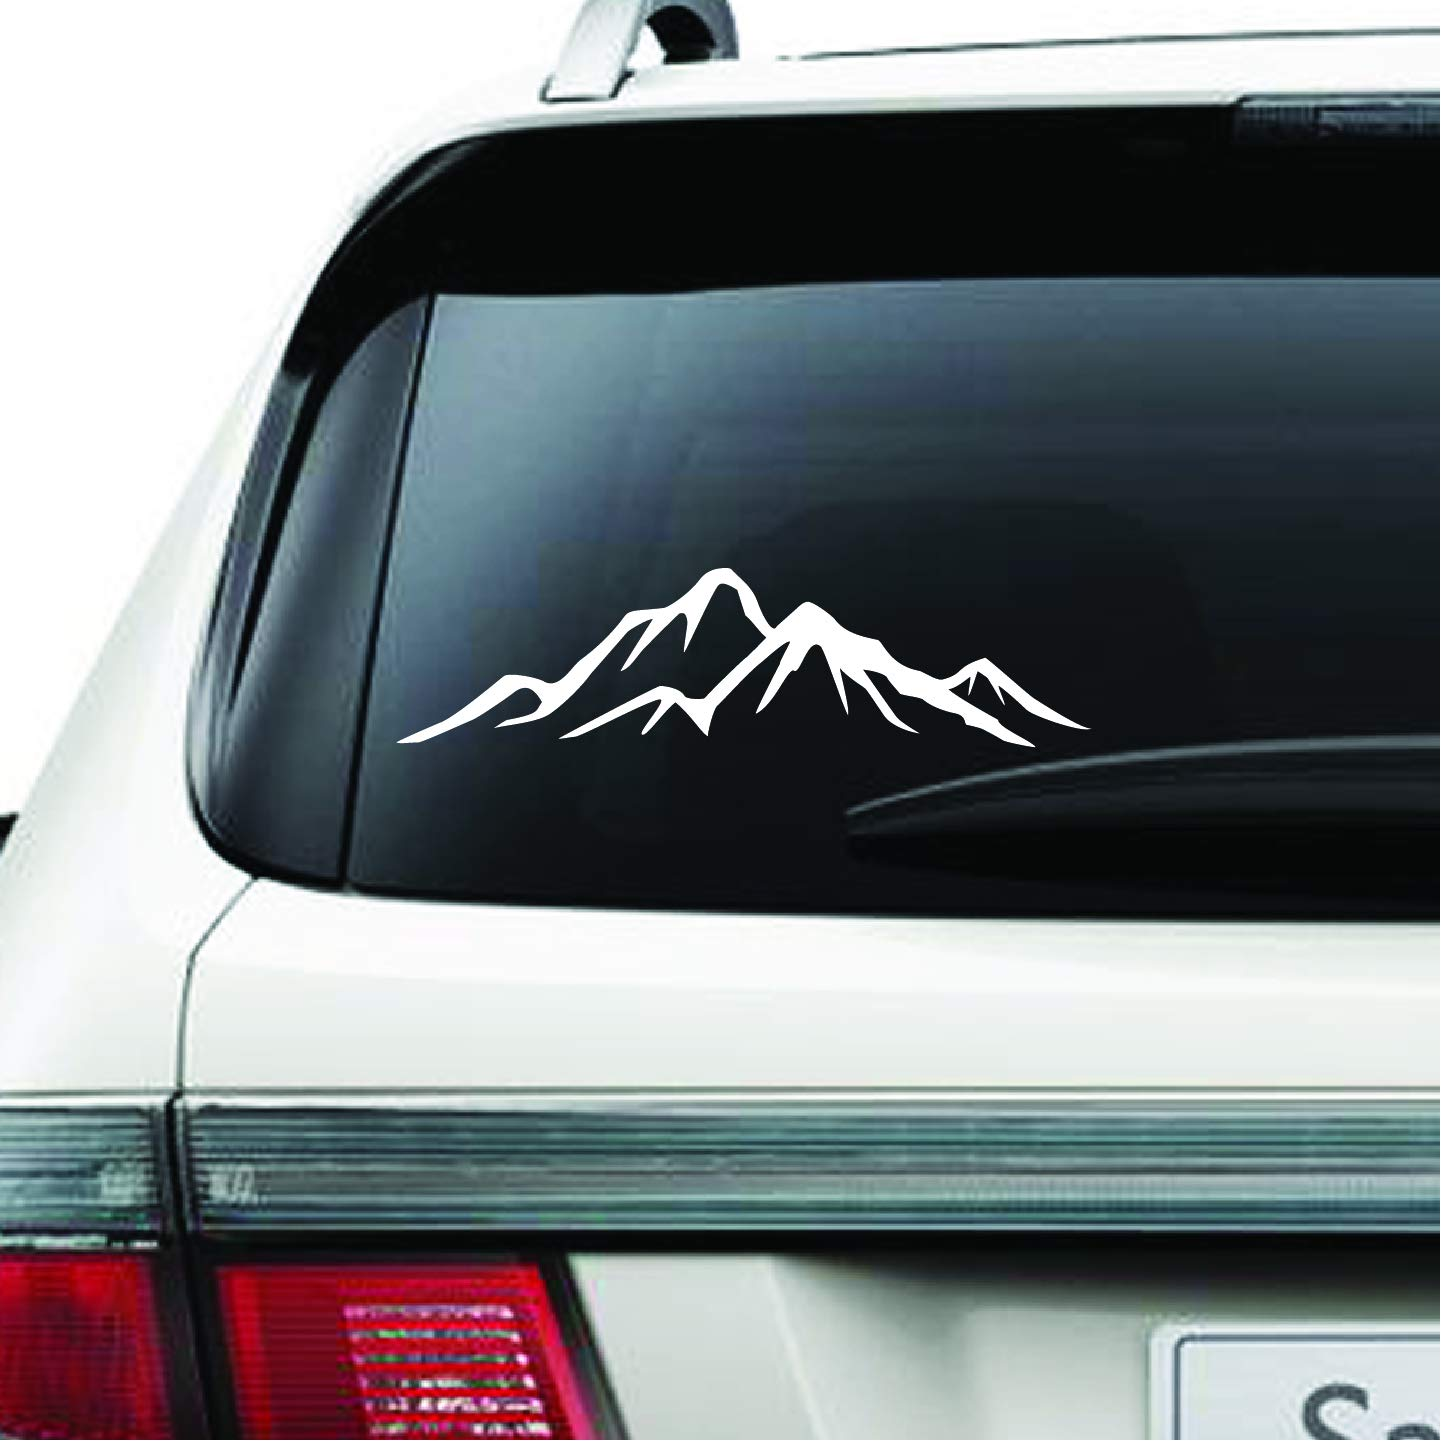 Mountain Wall Car Decal - Inspriational Quotes Mountains Travel Vinyl Wall Decals Home Decor - Vinyl Sticker for Vehicles Car Nursery Bedroom Living Room D7